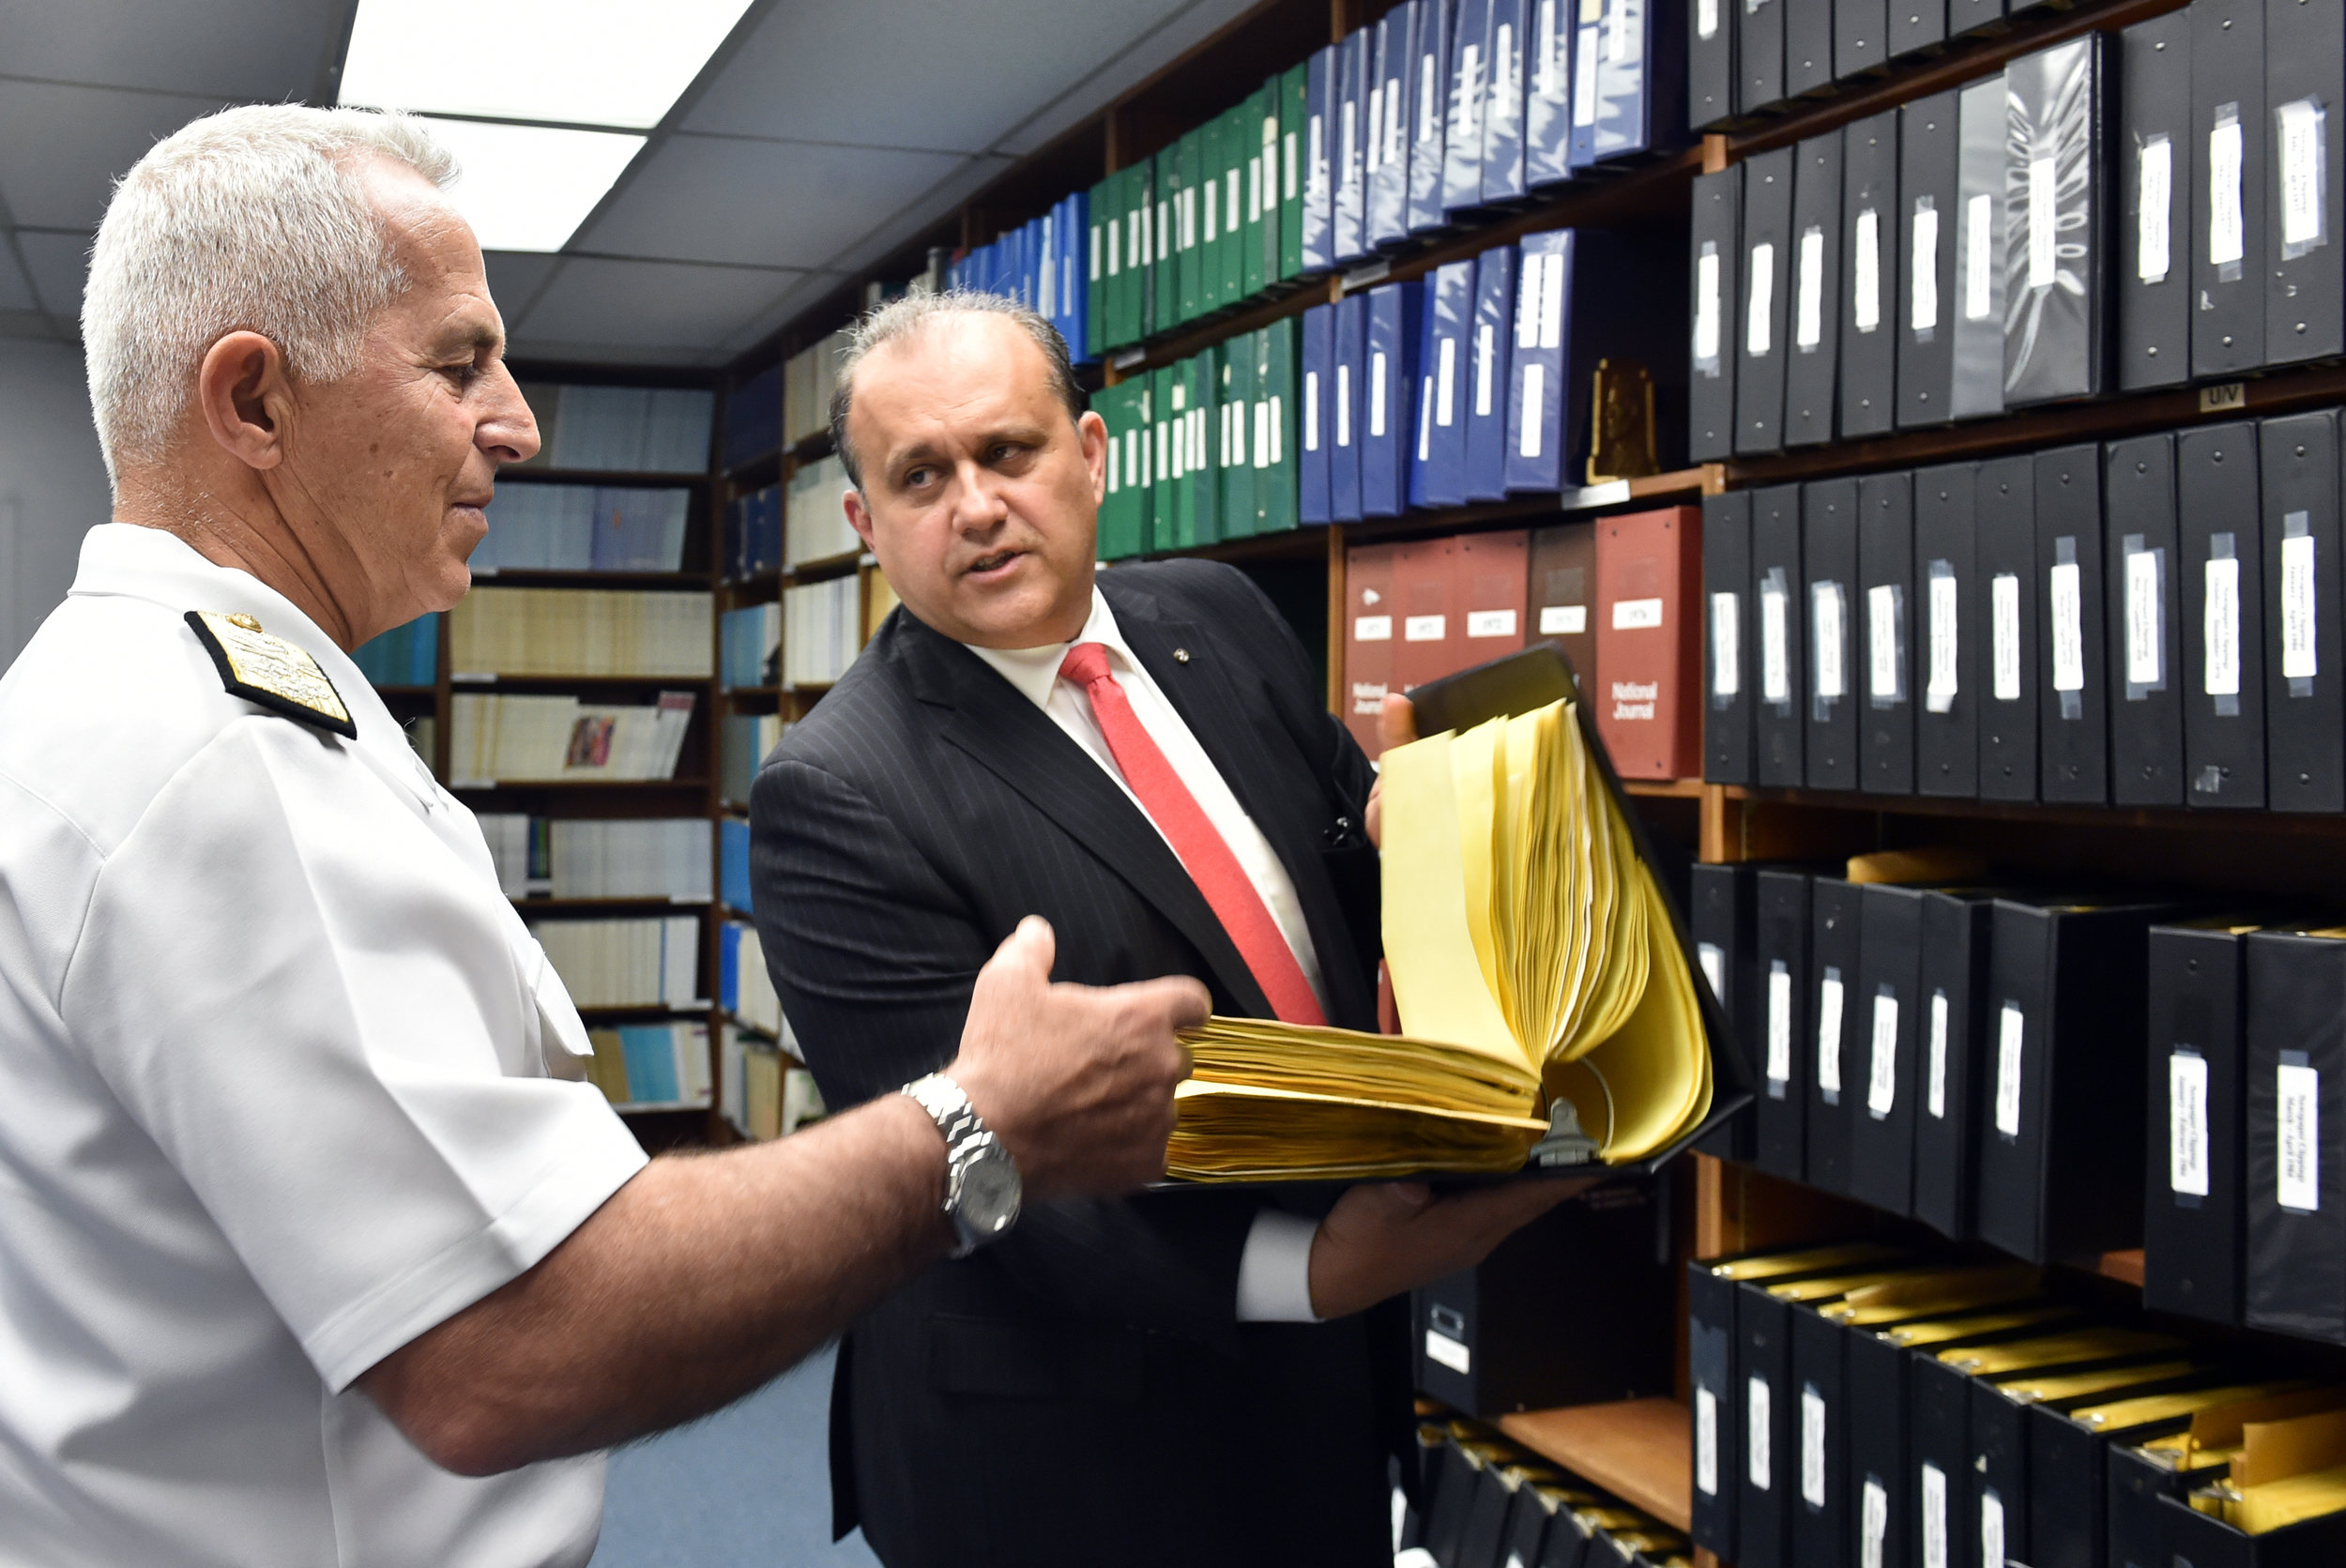 Larigakis giving the Admiral a tour of the E. John & Cleo Rumpakis AHIF Library.